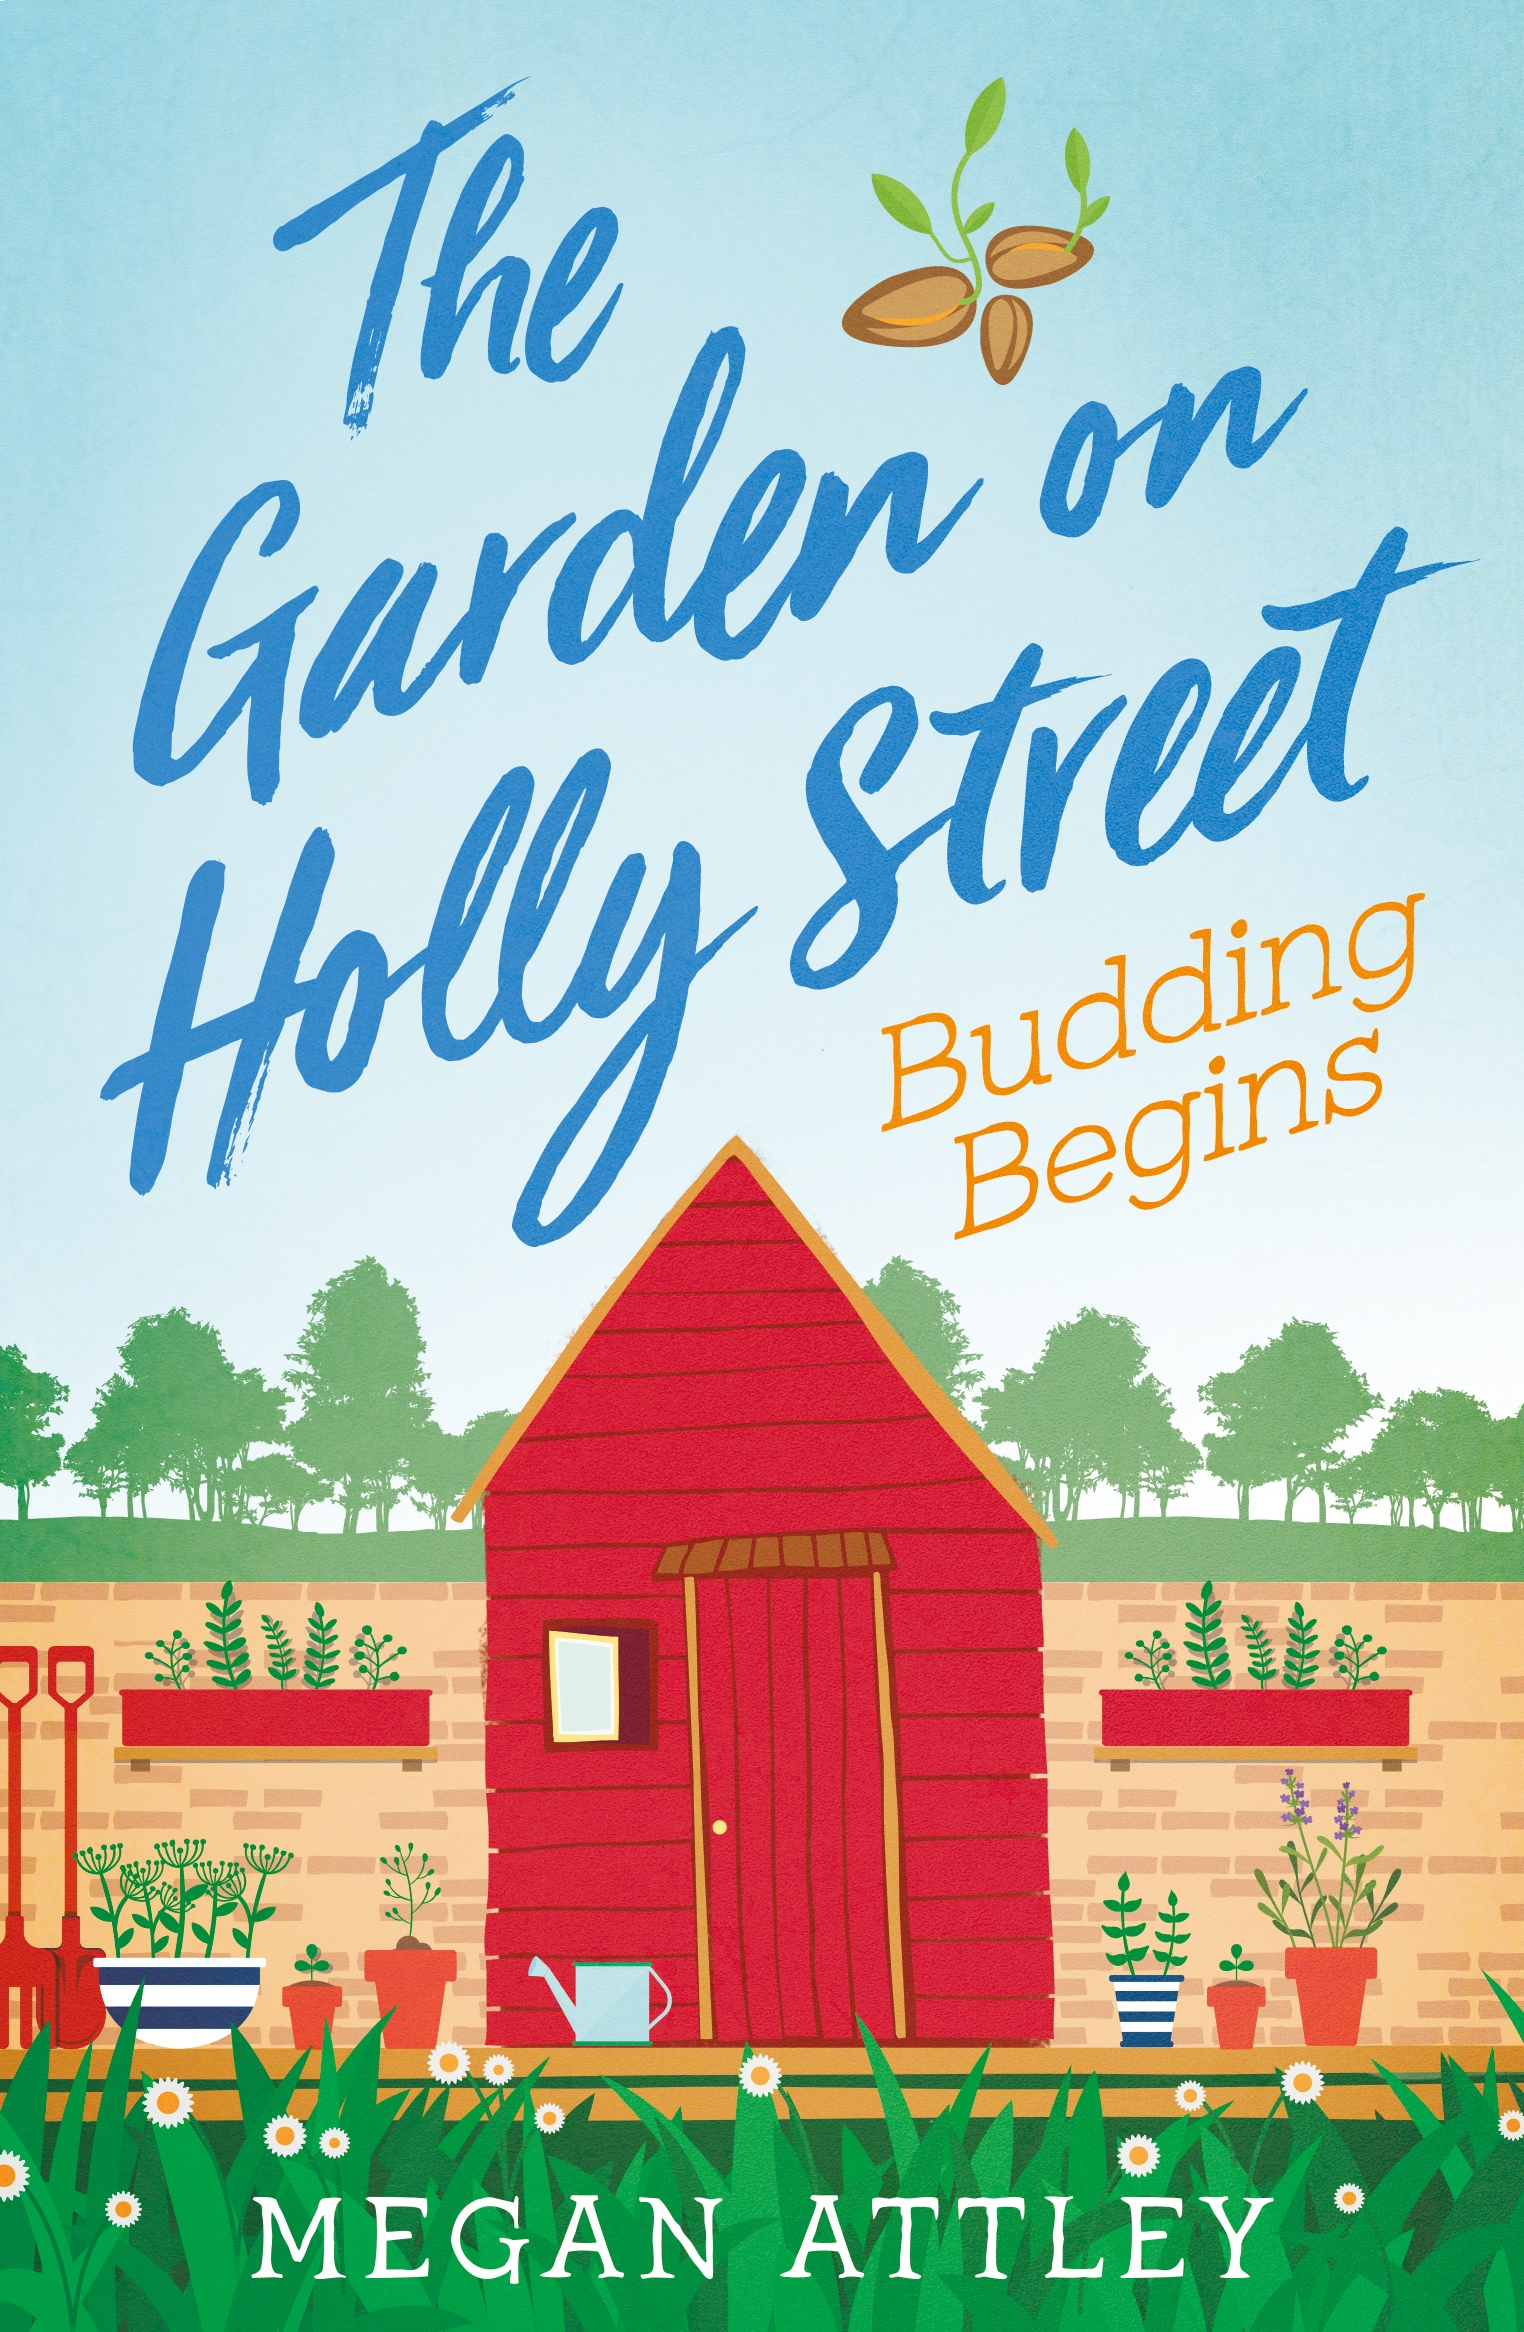 The Garden on Holly Street Part Two